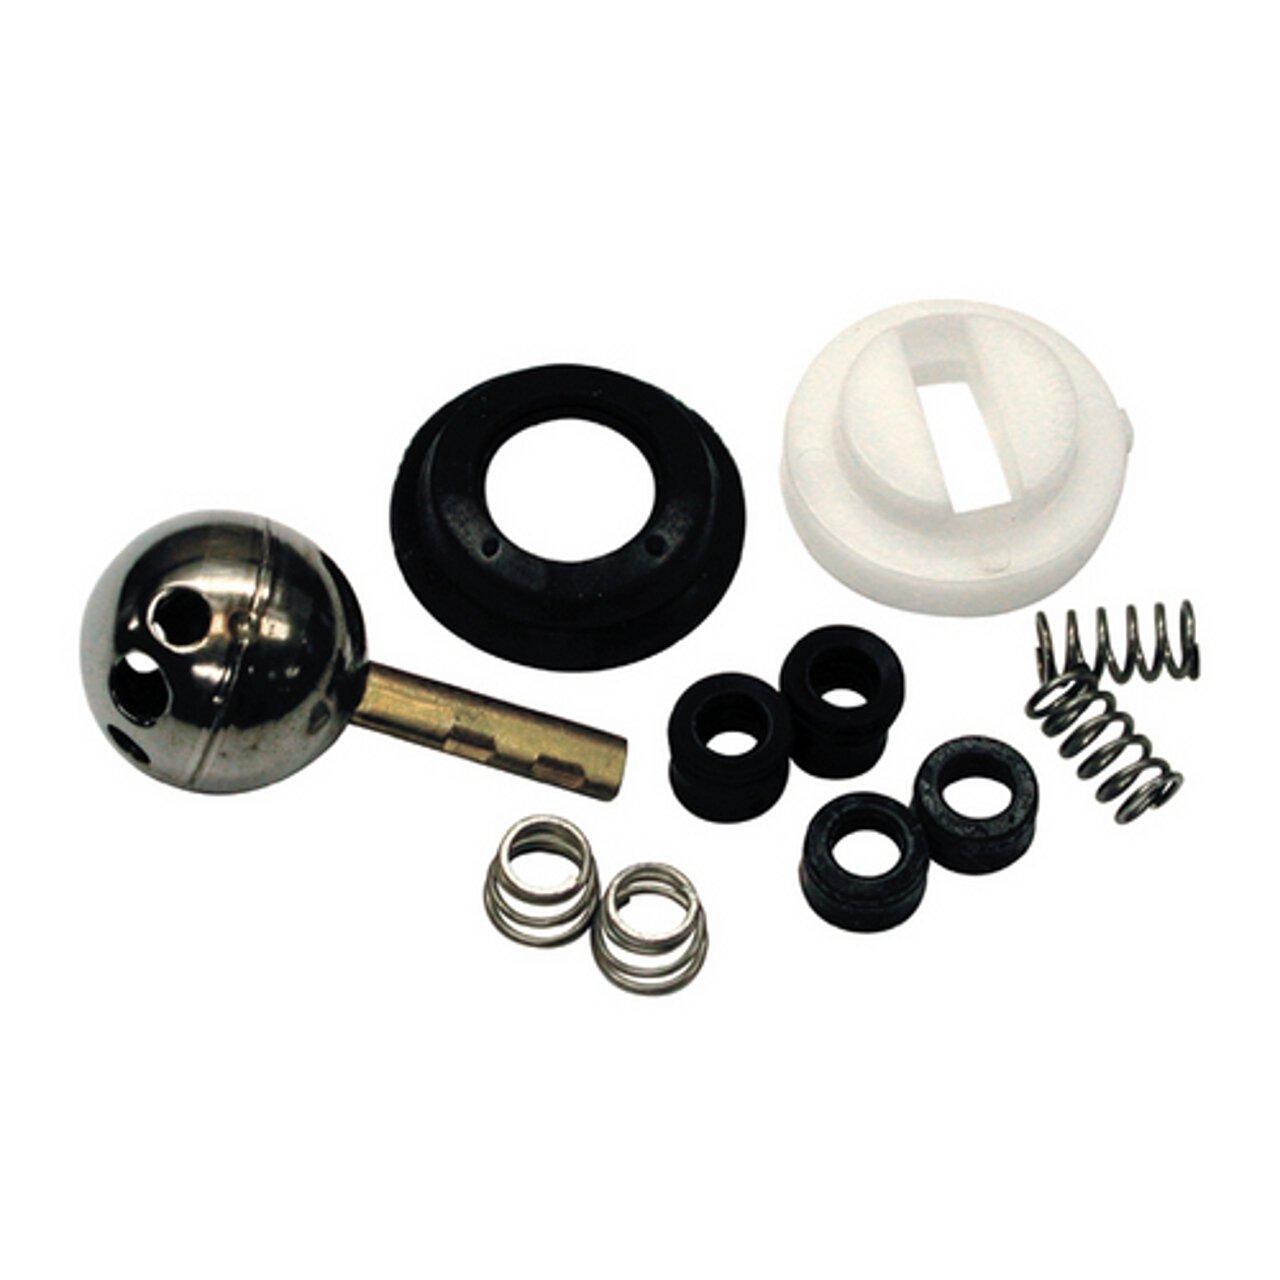 Danco 86971 Repair Kit for Delta with Number 212 SS Ball Inc